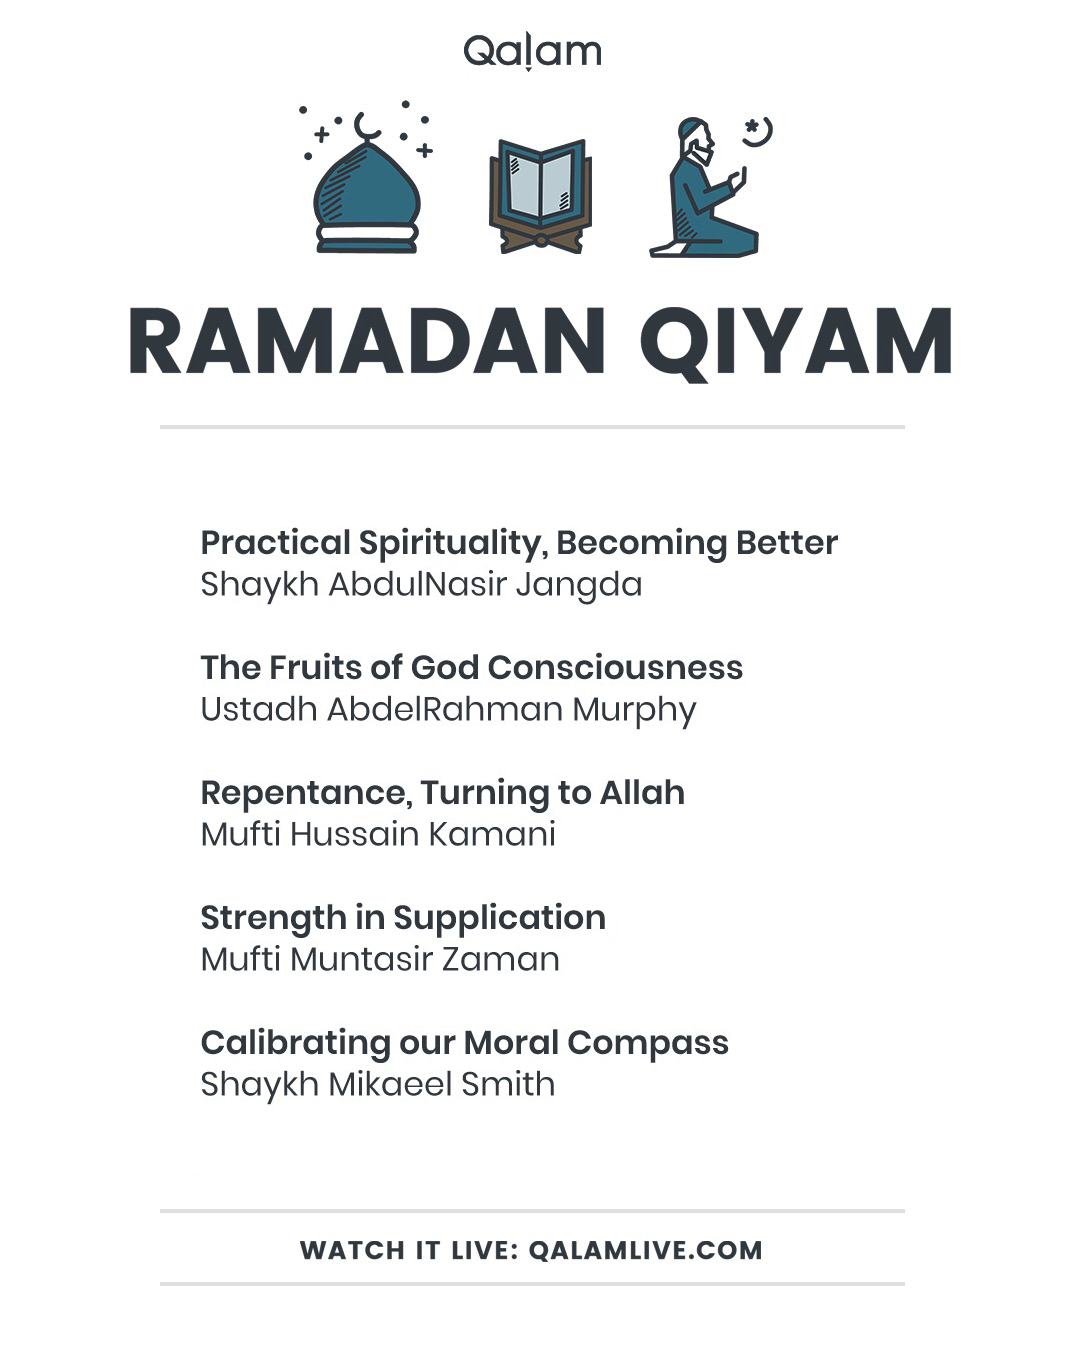 Qalam Qiyam : Practical Spirituality, Becoming Better